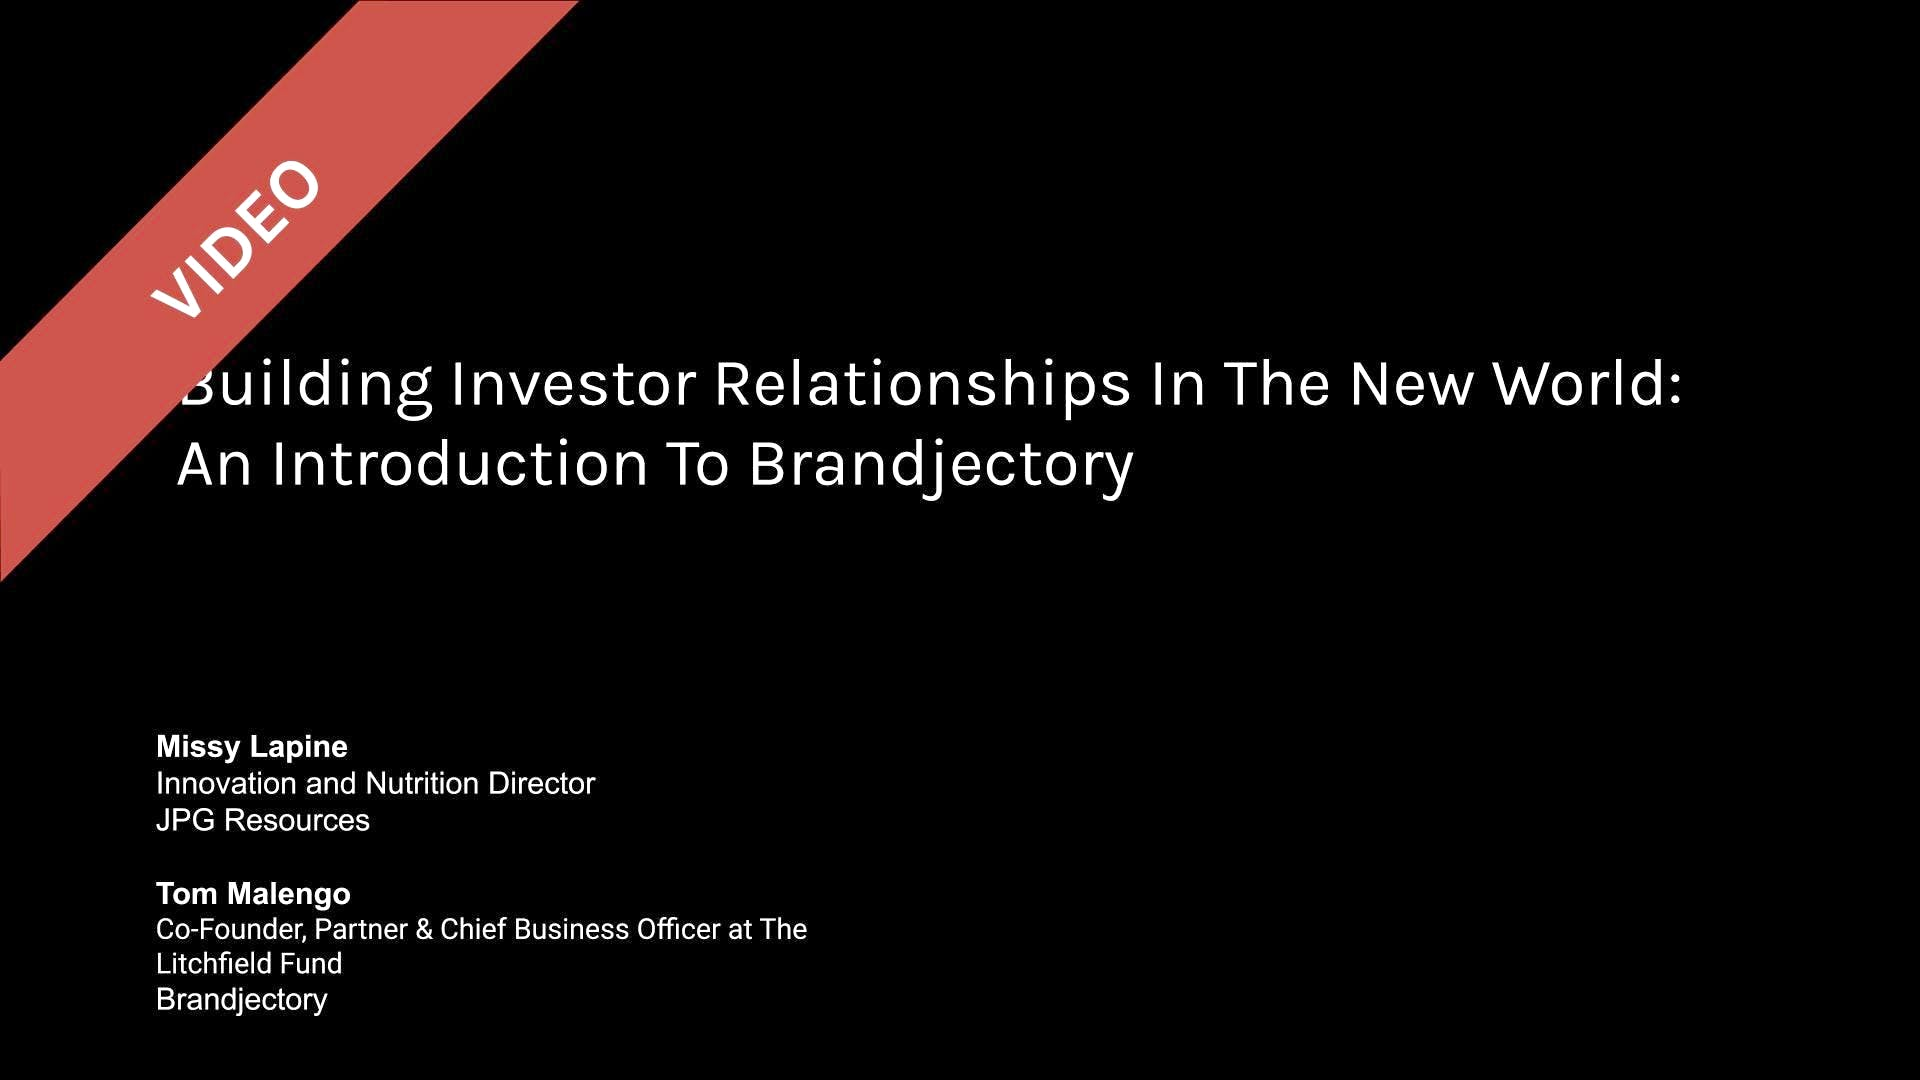 Building Investor Relationships in the New World: An Introduction to Brandjectory with Missy Lapine and Tom Malengo